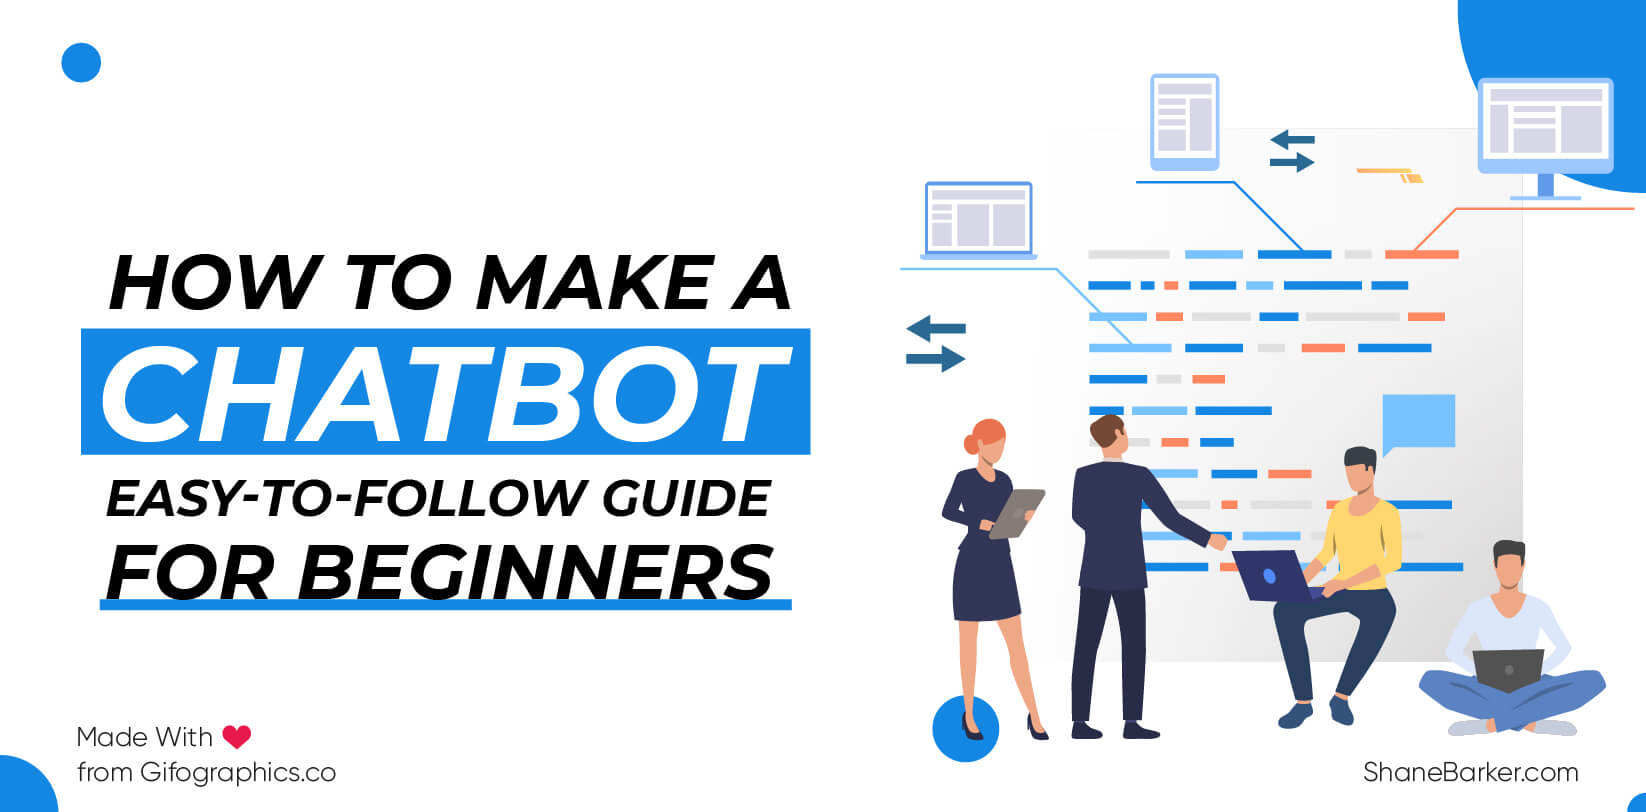 How to Make a Chatbot Easy-to-Follow Guide for Beginners